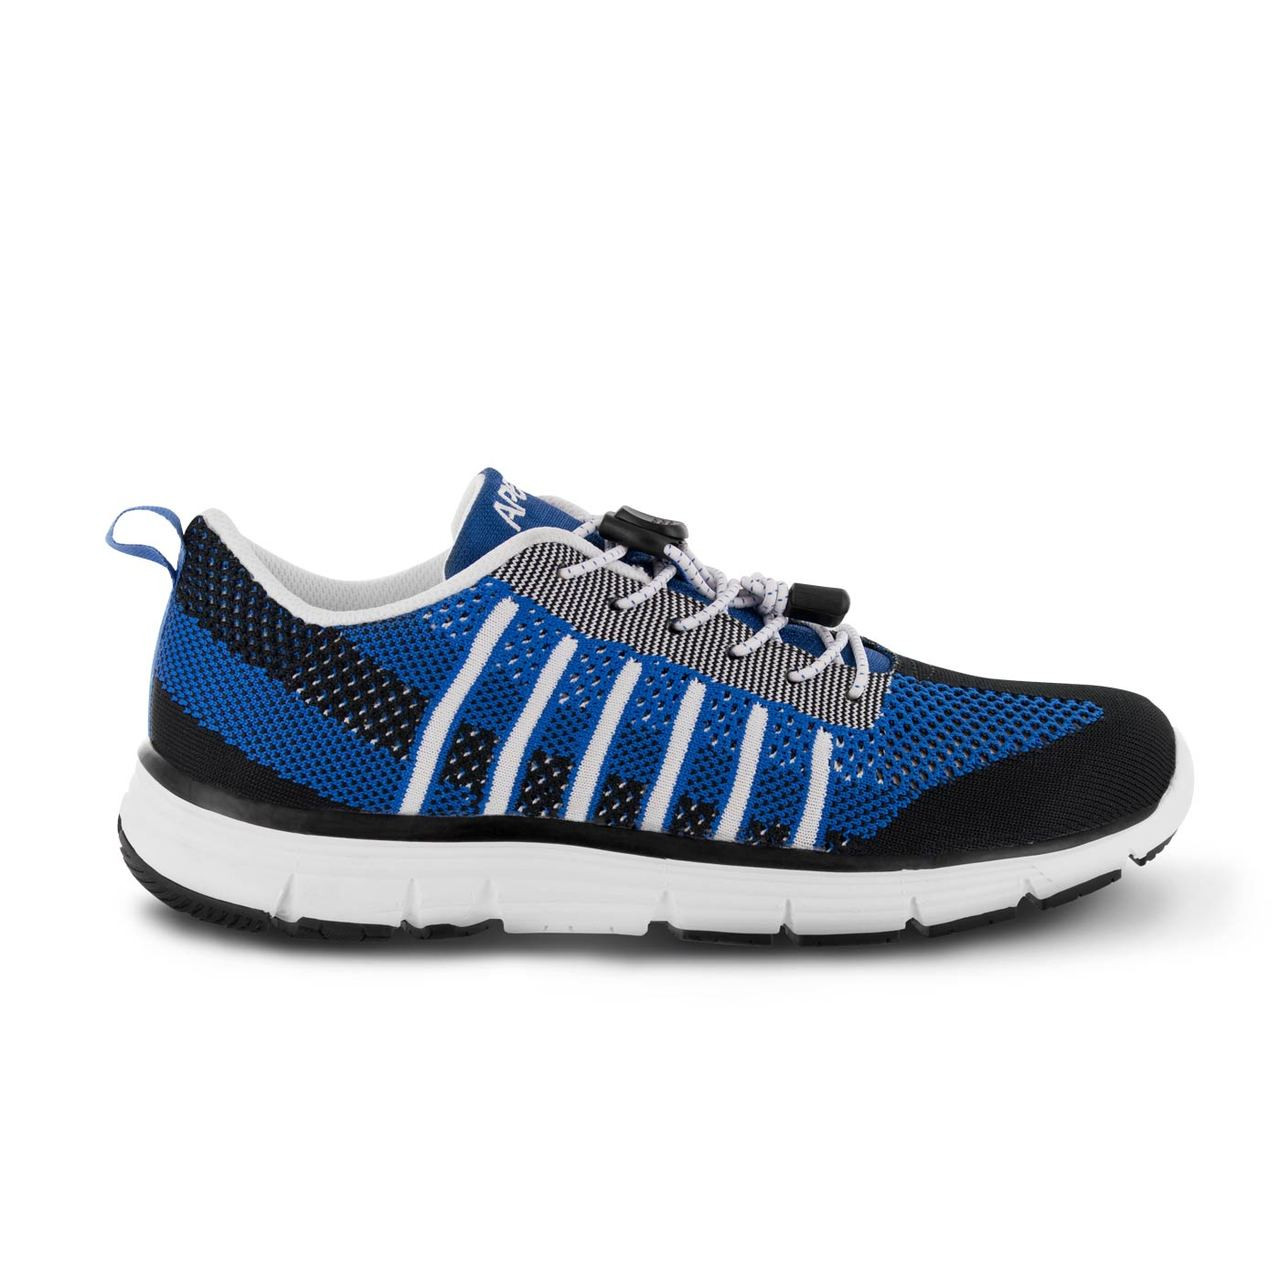 40b8627e99b6e8 Men's Bolt Athletic Knit - A7100M - Navy | Apex shoes